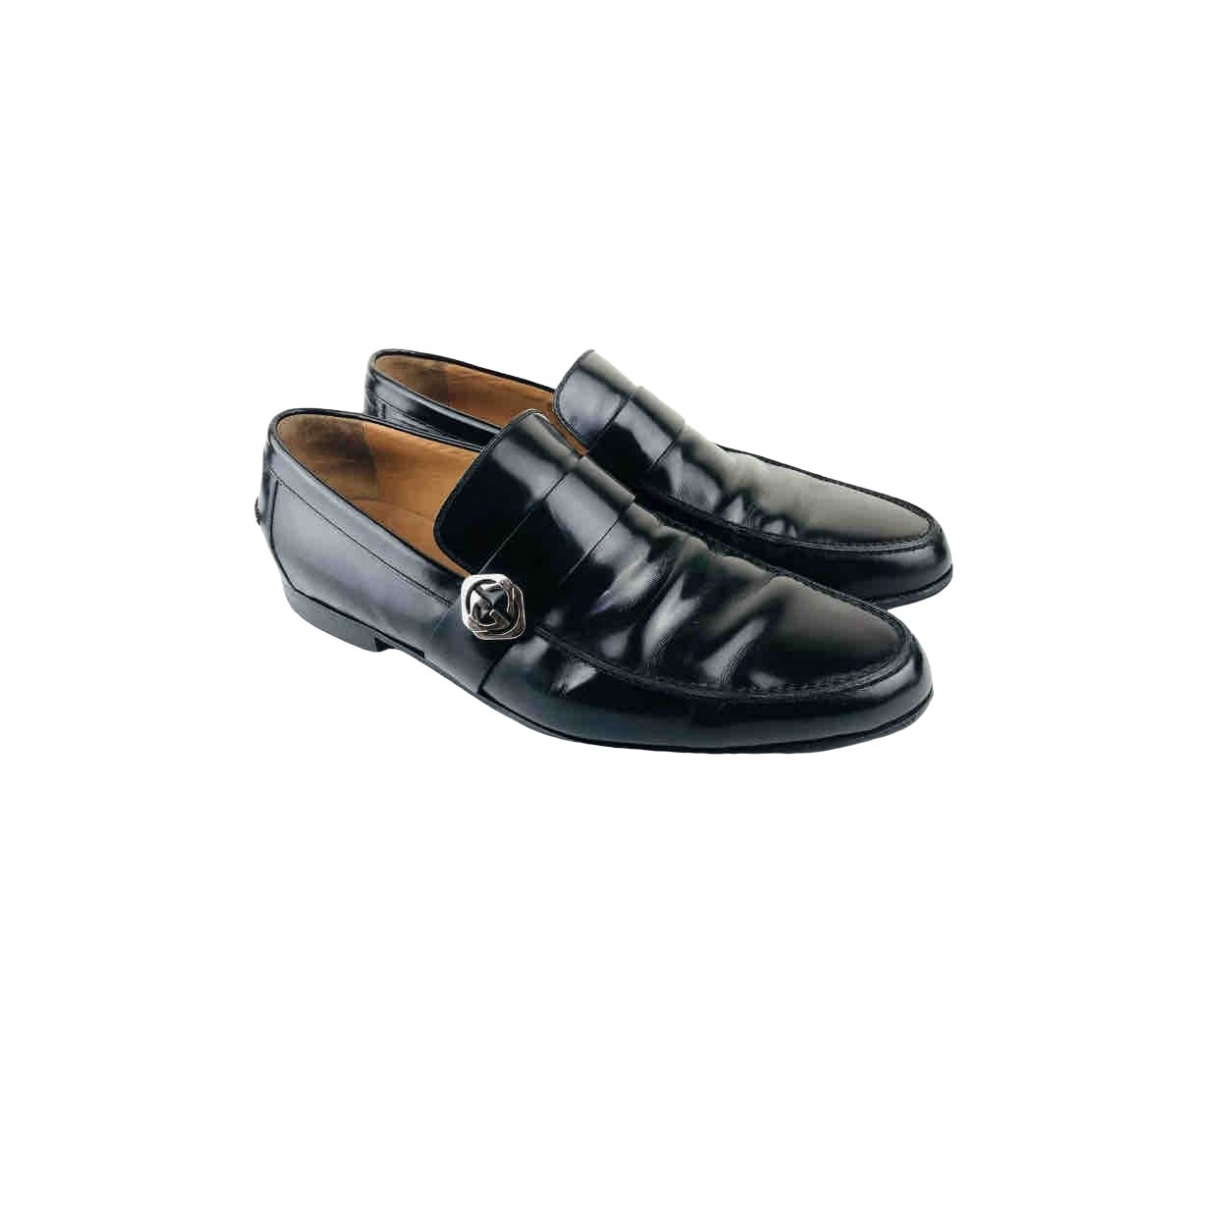 Gucci \N Black Patent leather Flats for Men 10 UK